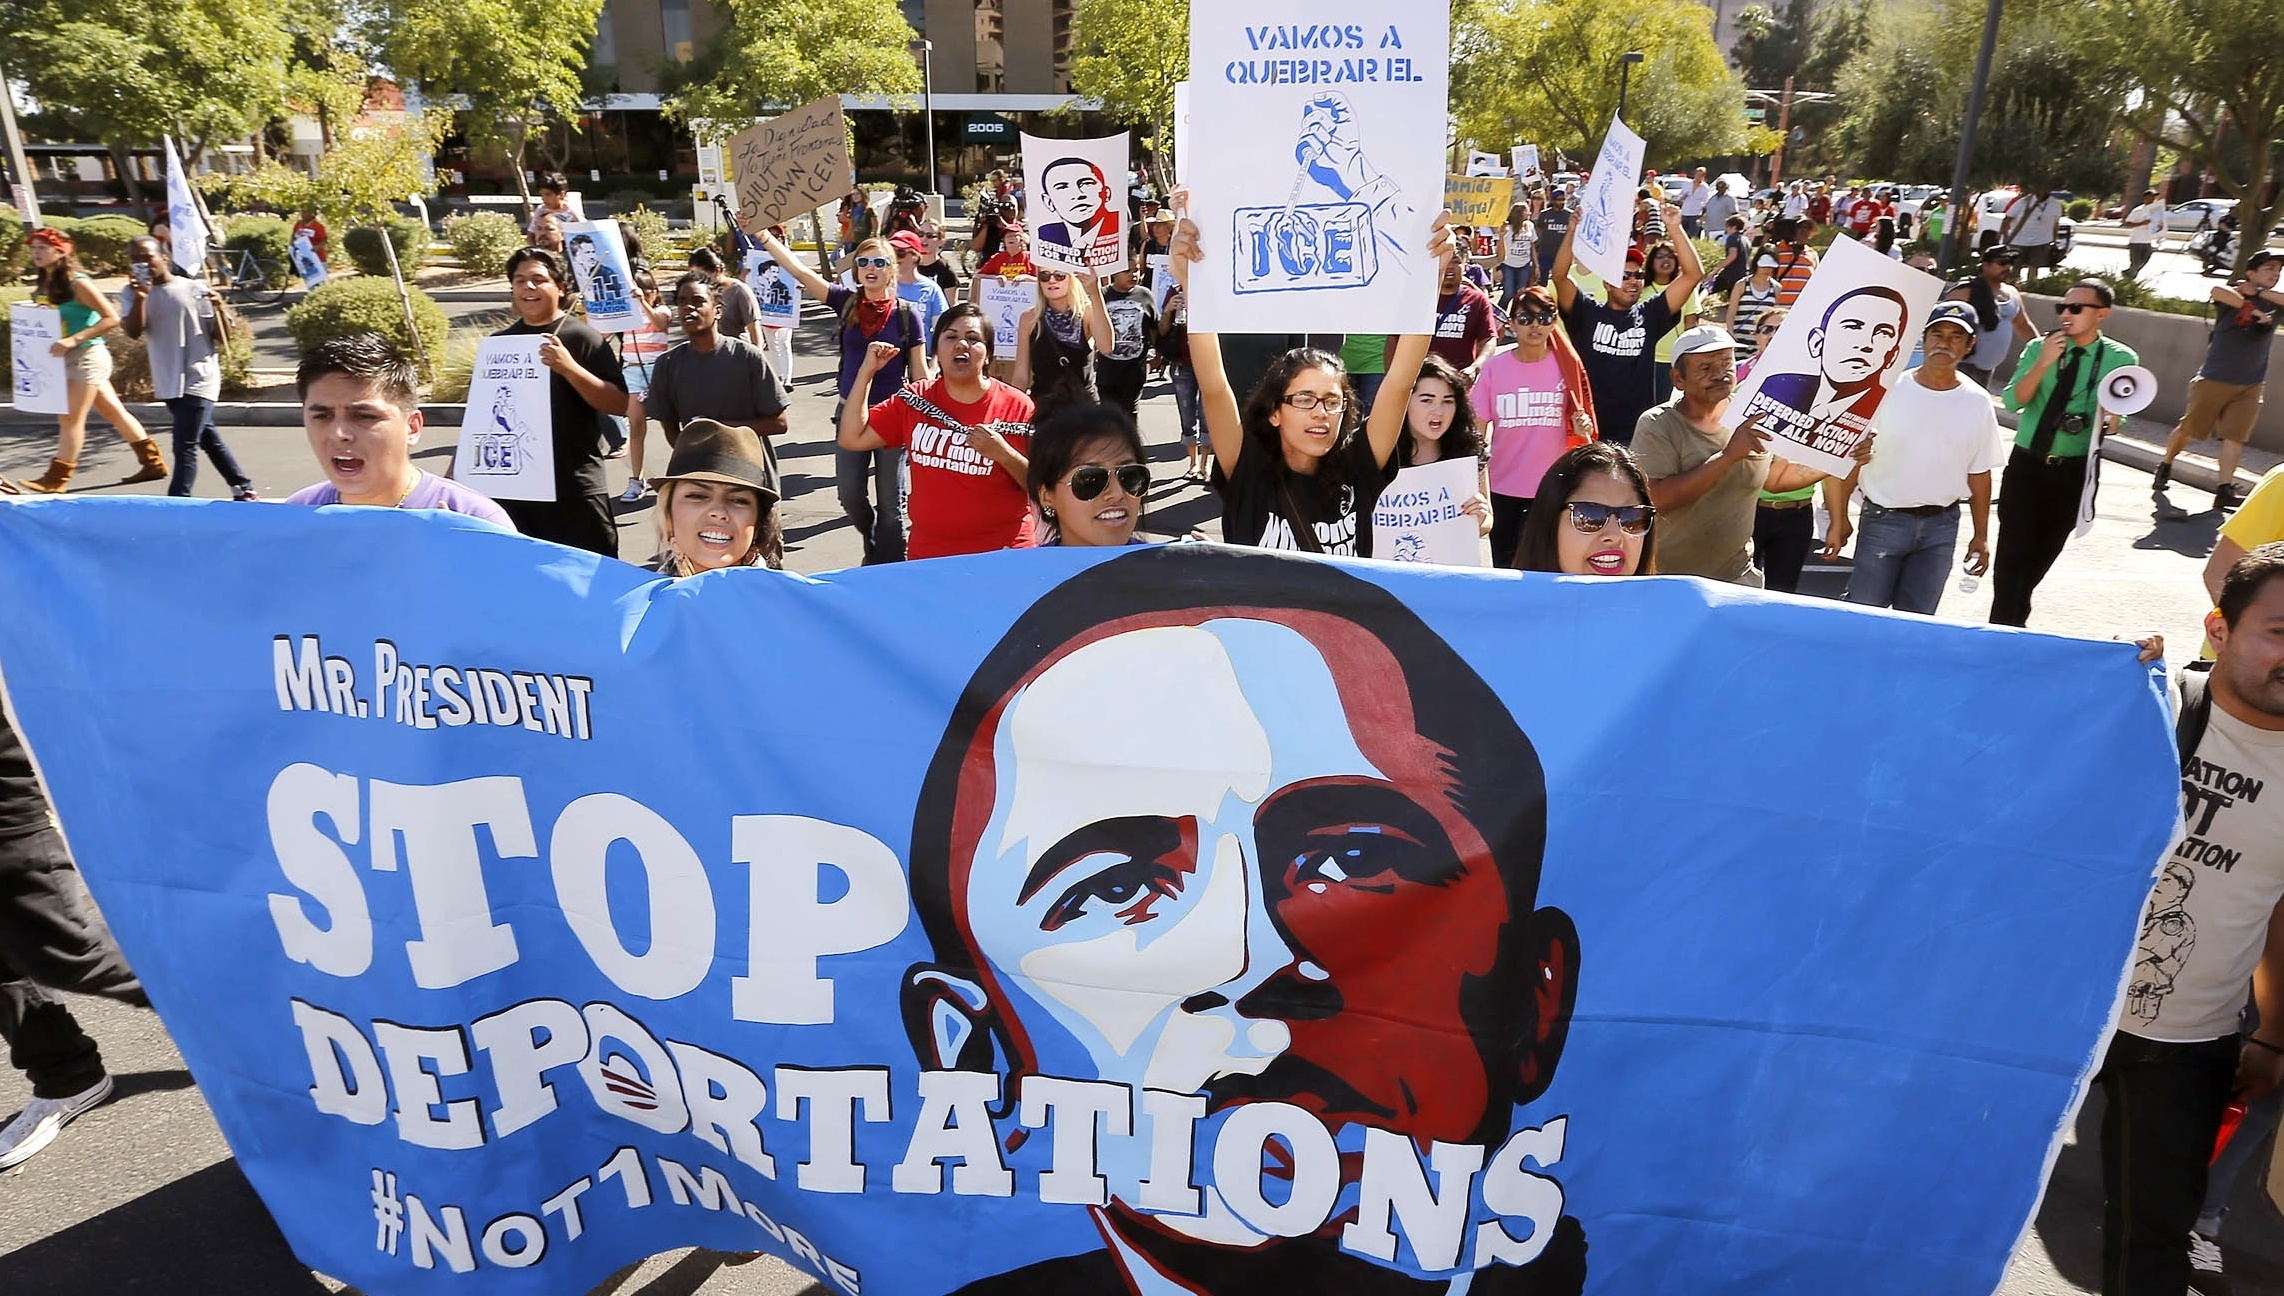 Hispanic Activists Vow To Keep Pressing White House Over Deportations